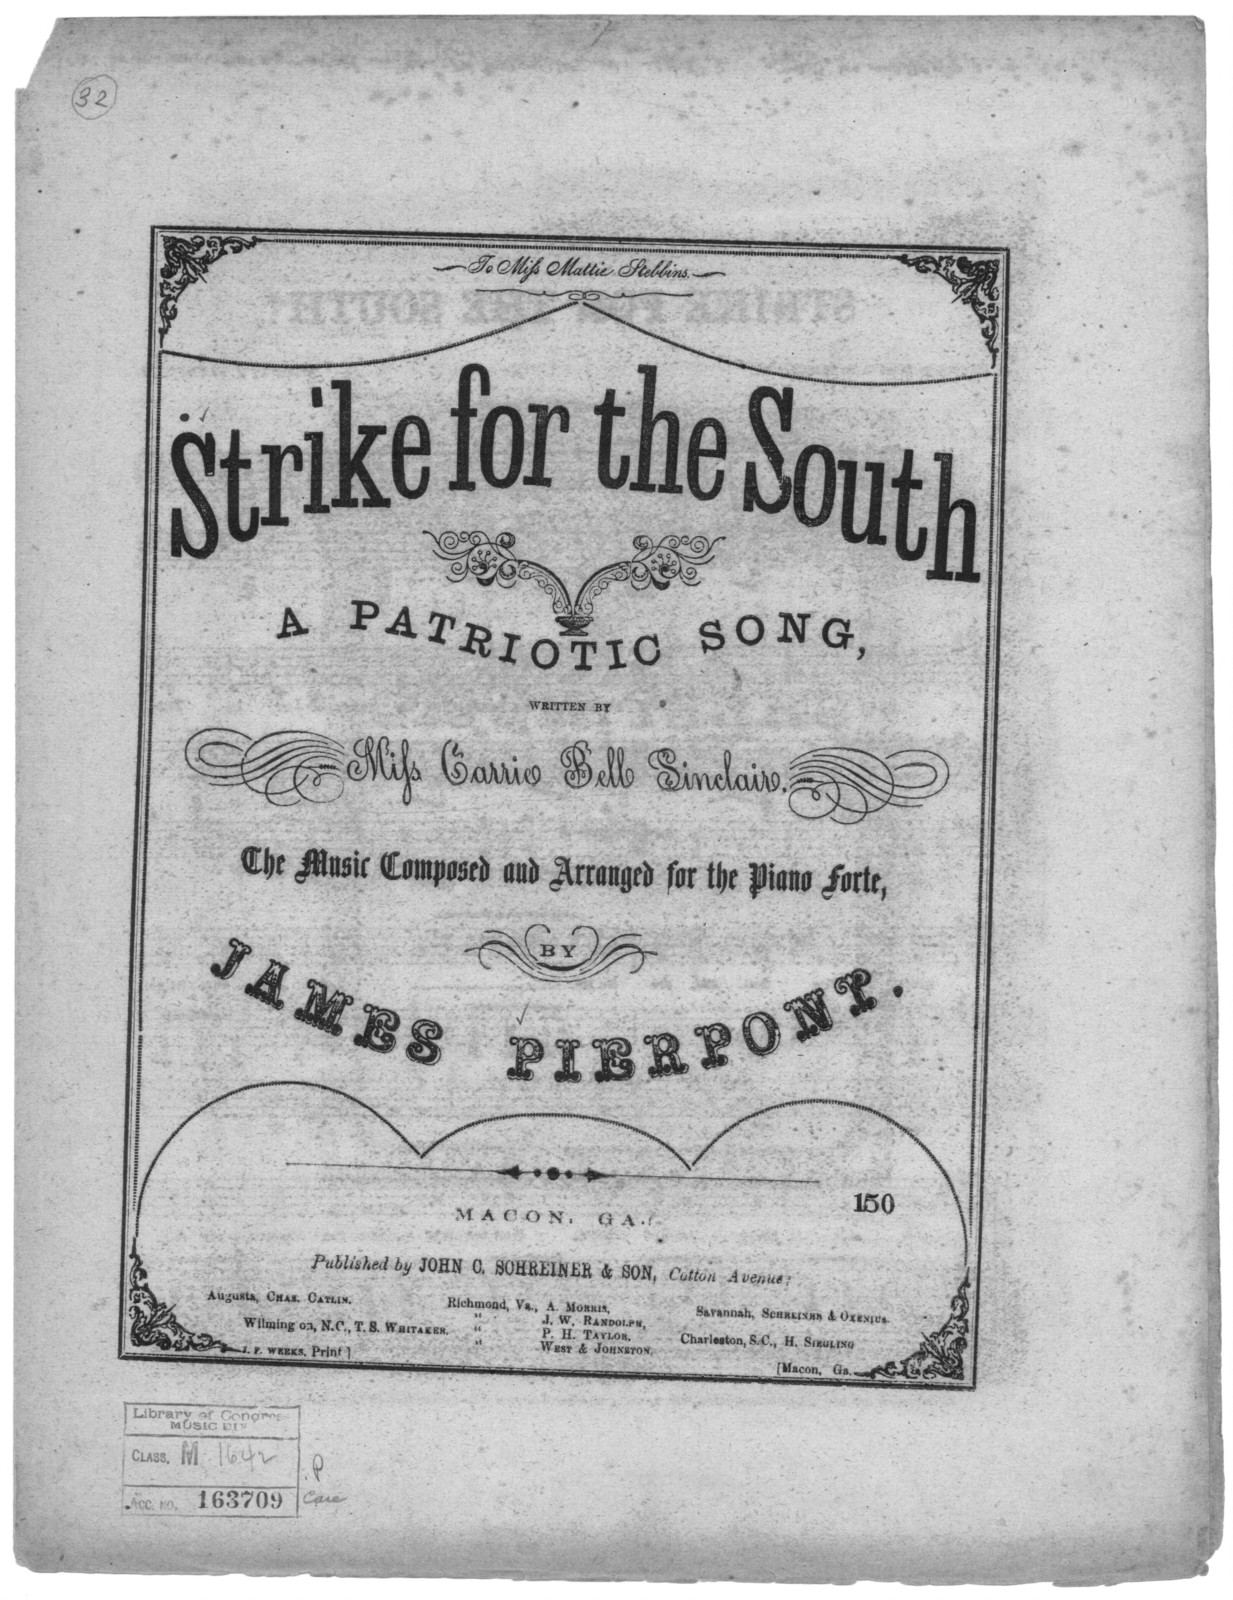 Strike for the south!